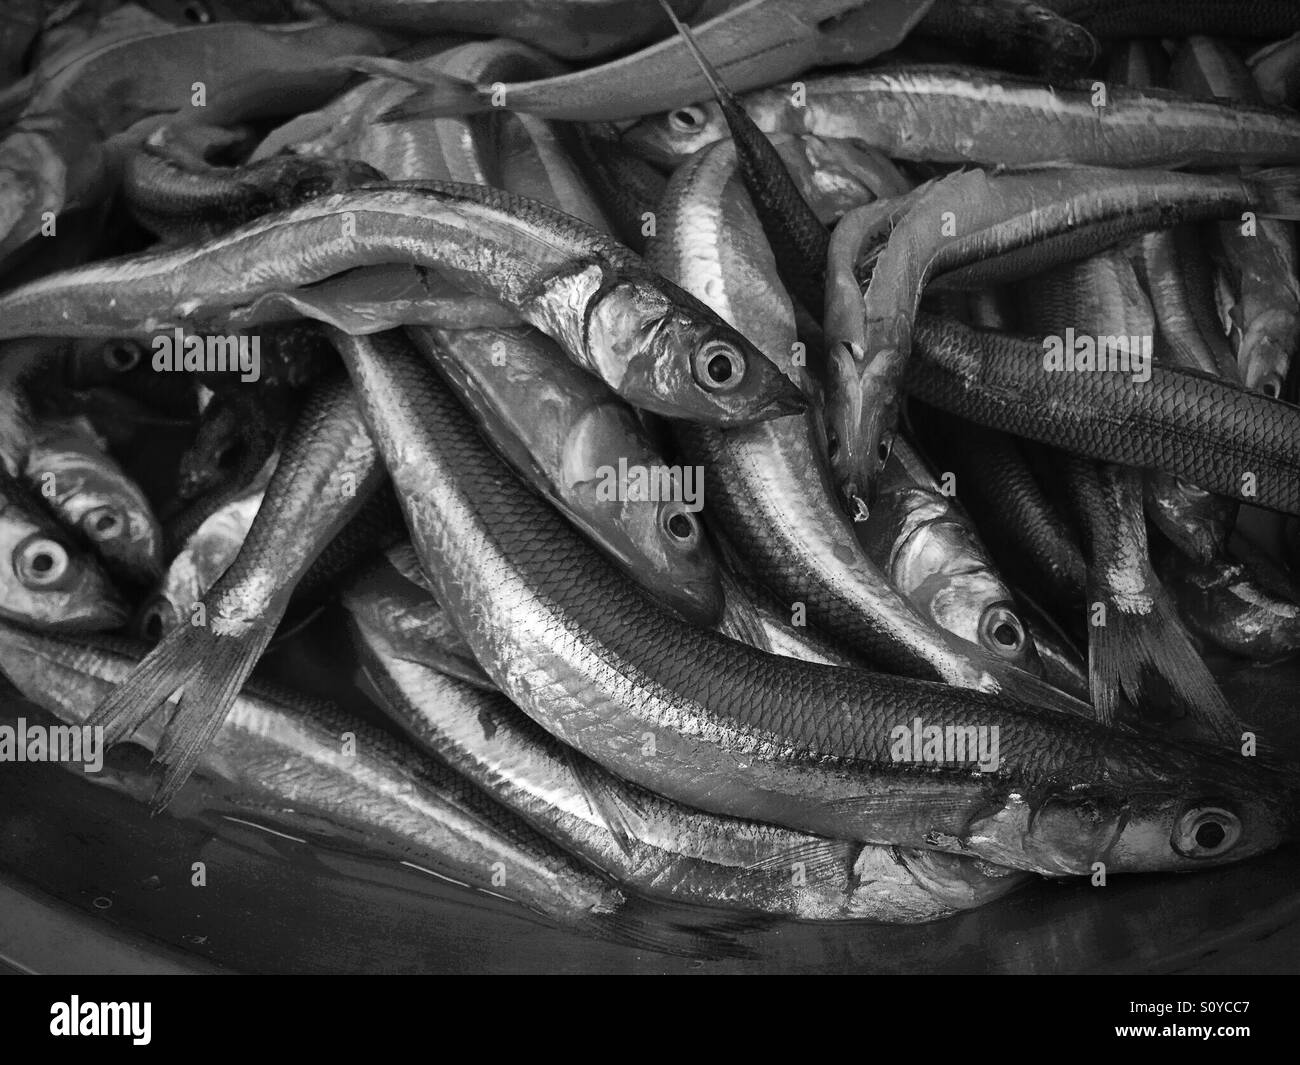 Fish at a fish market in South America - Stock Image